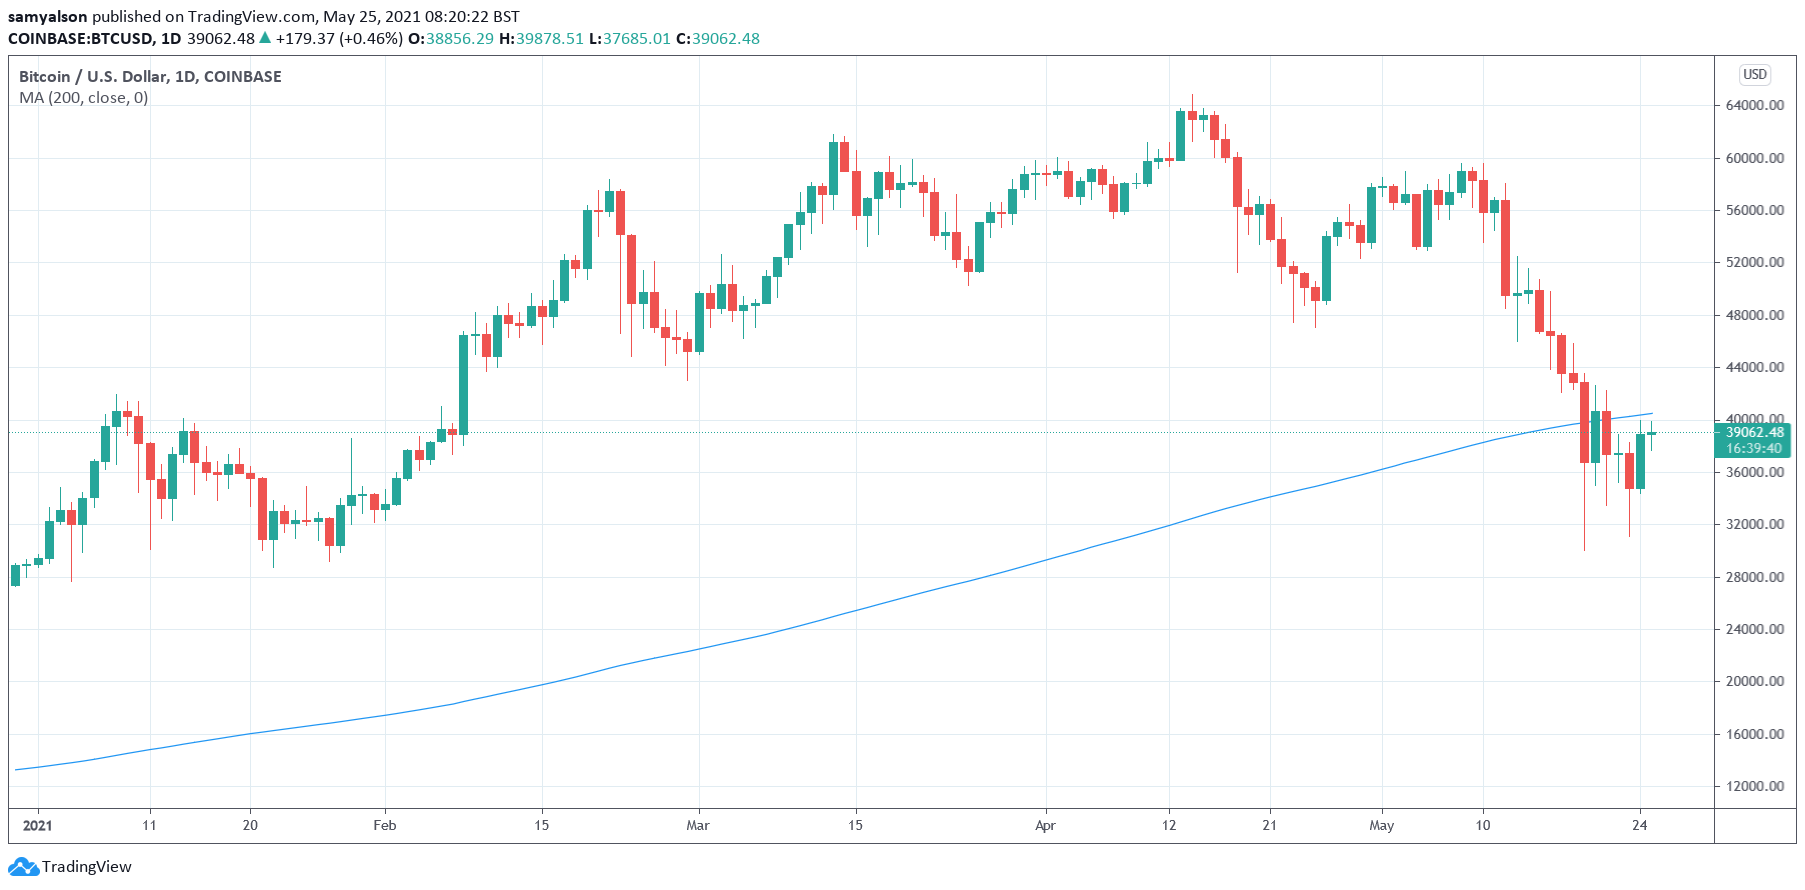 Bitcoin daily chart with 200-day MA